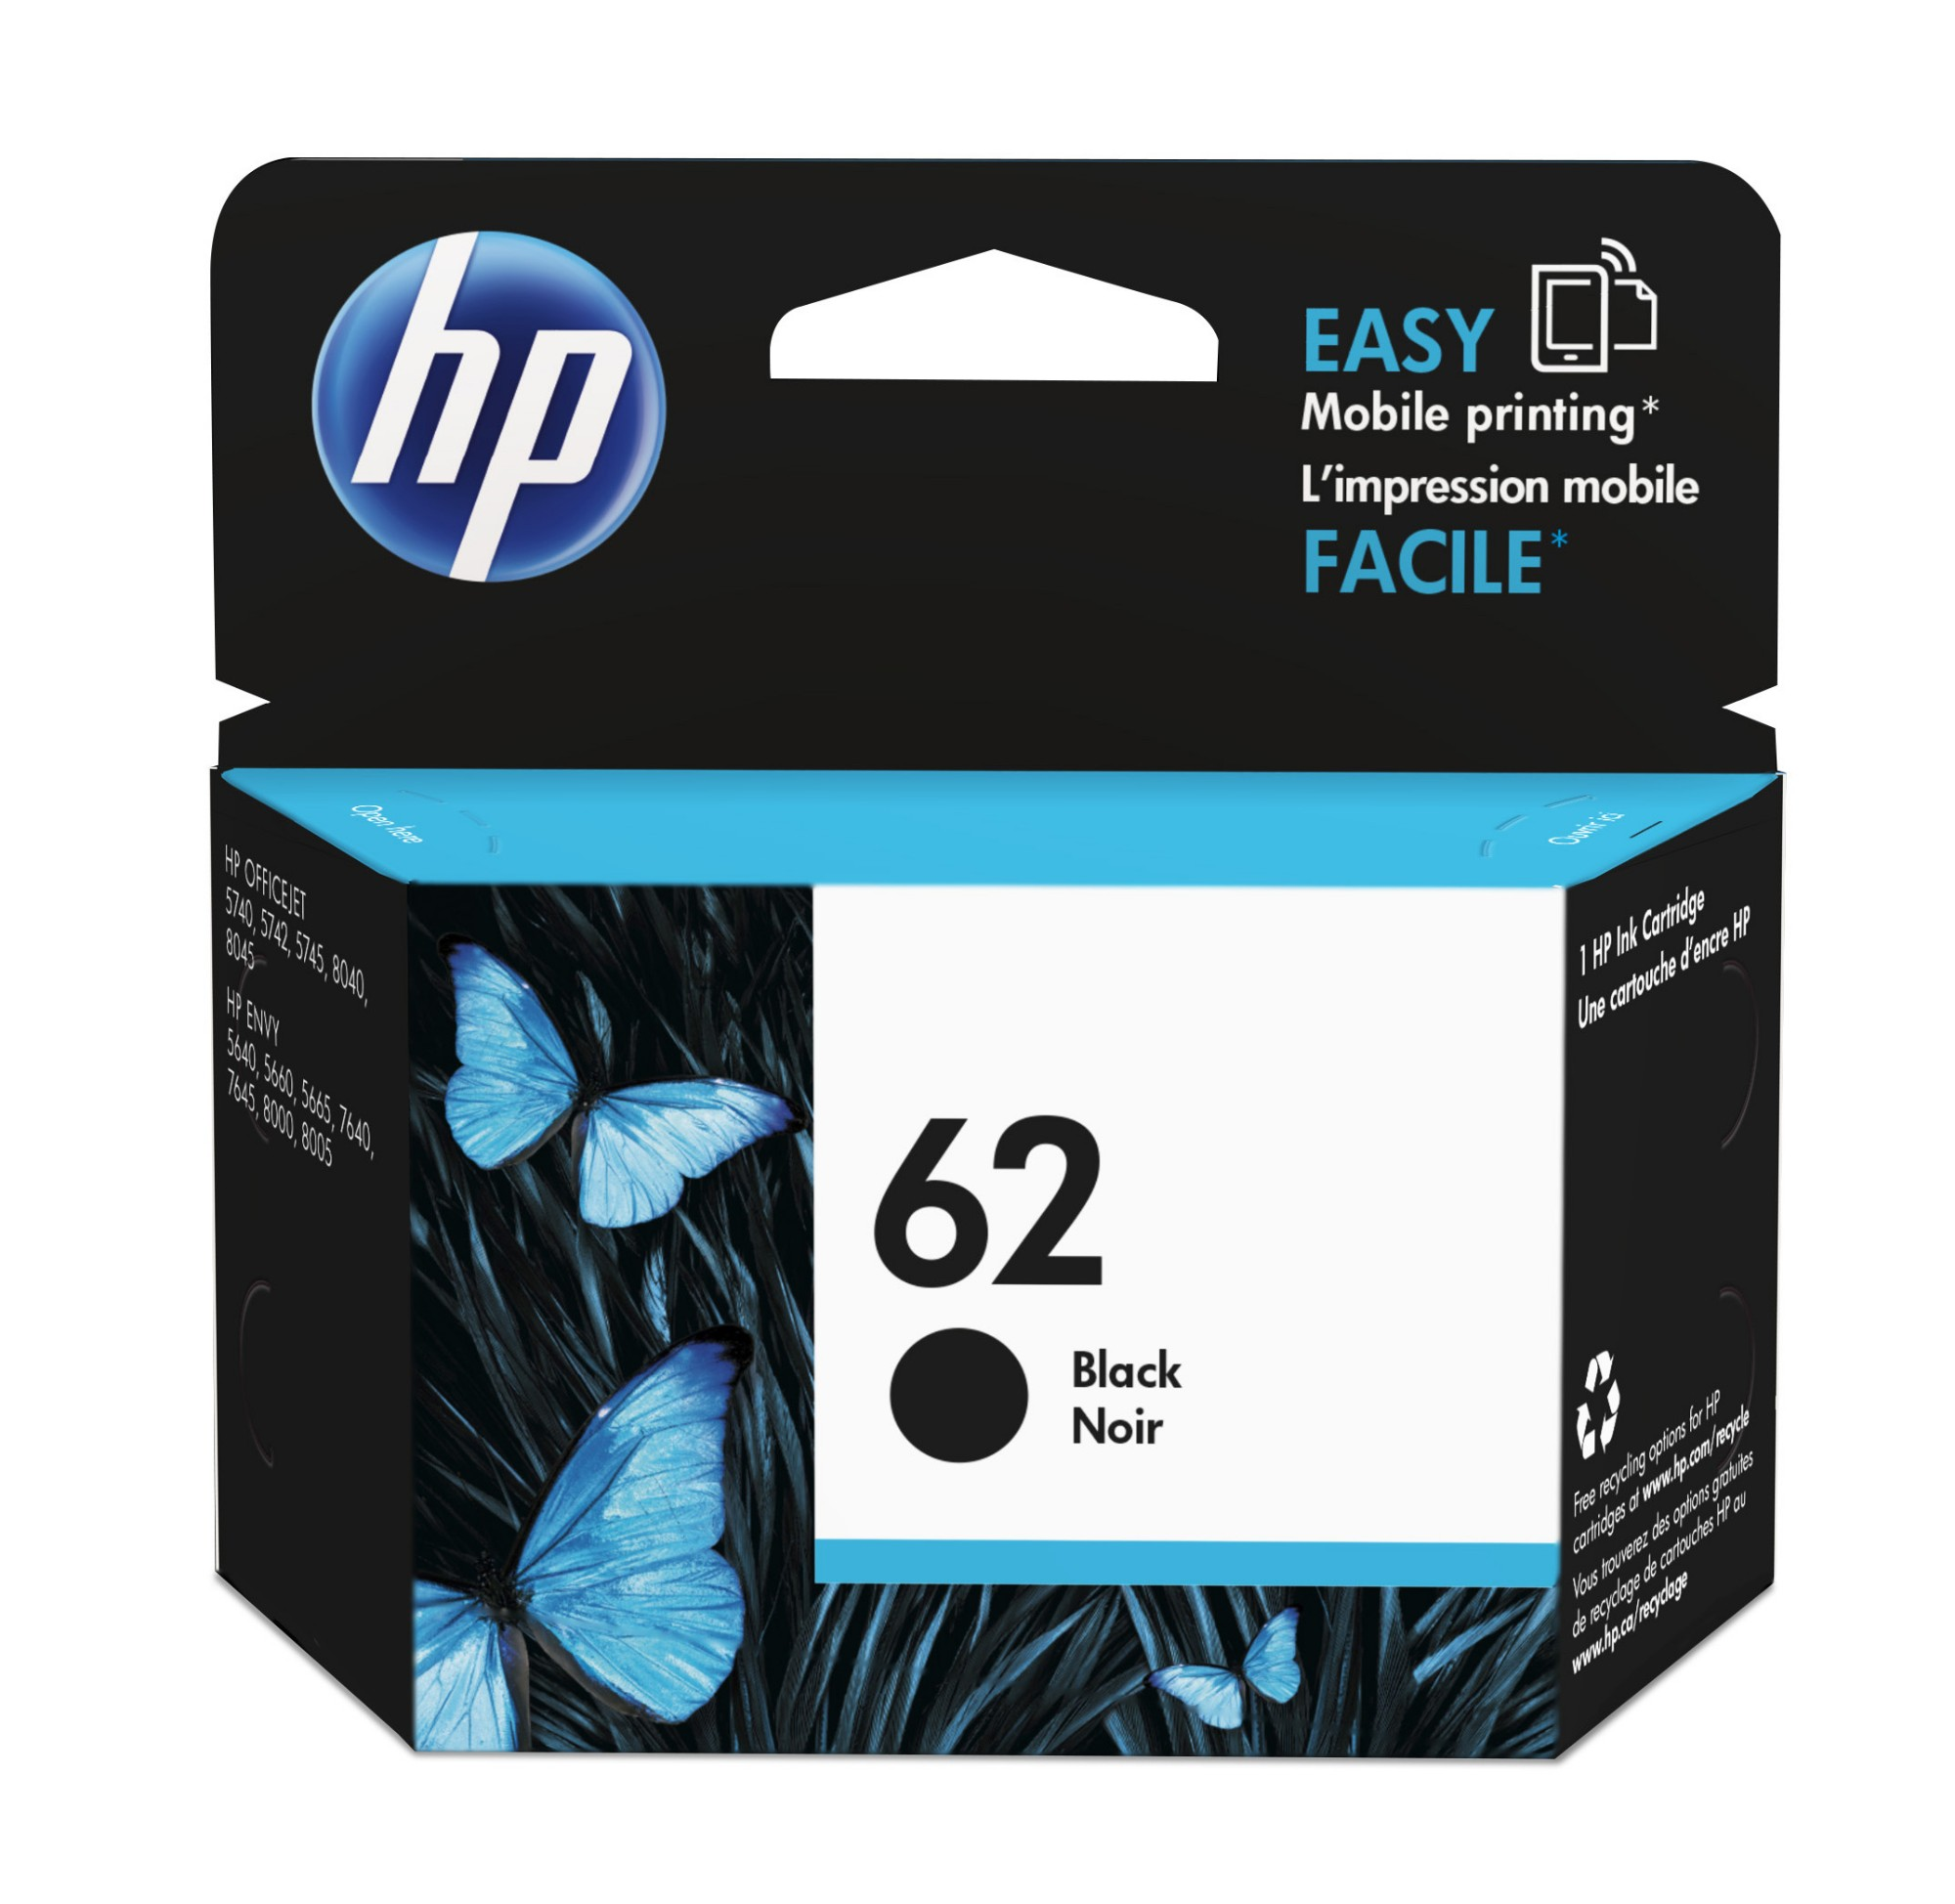 HP 62 Black Ink Cartridge inktcartridge Original Zwart